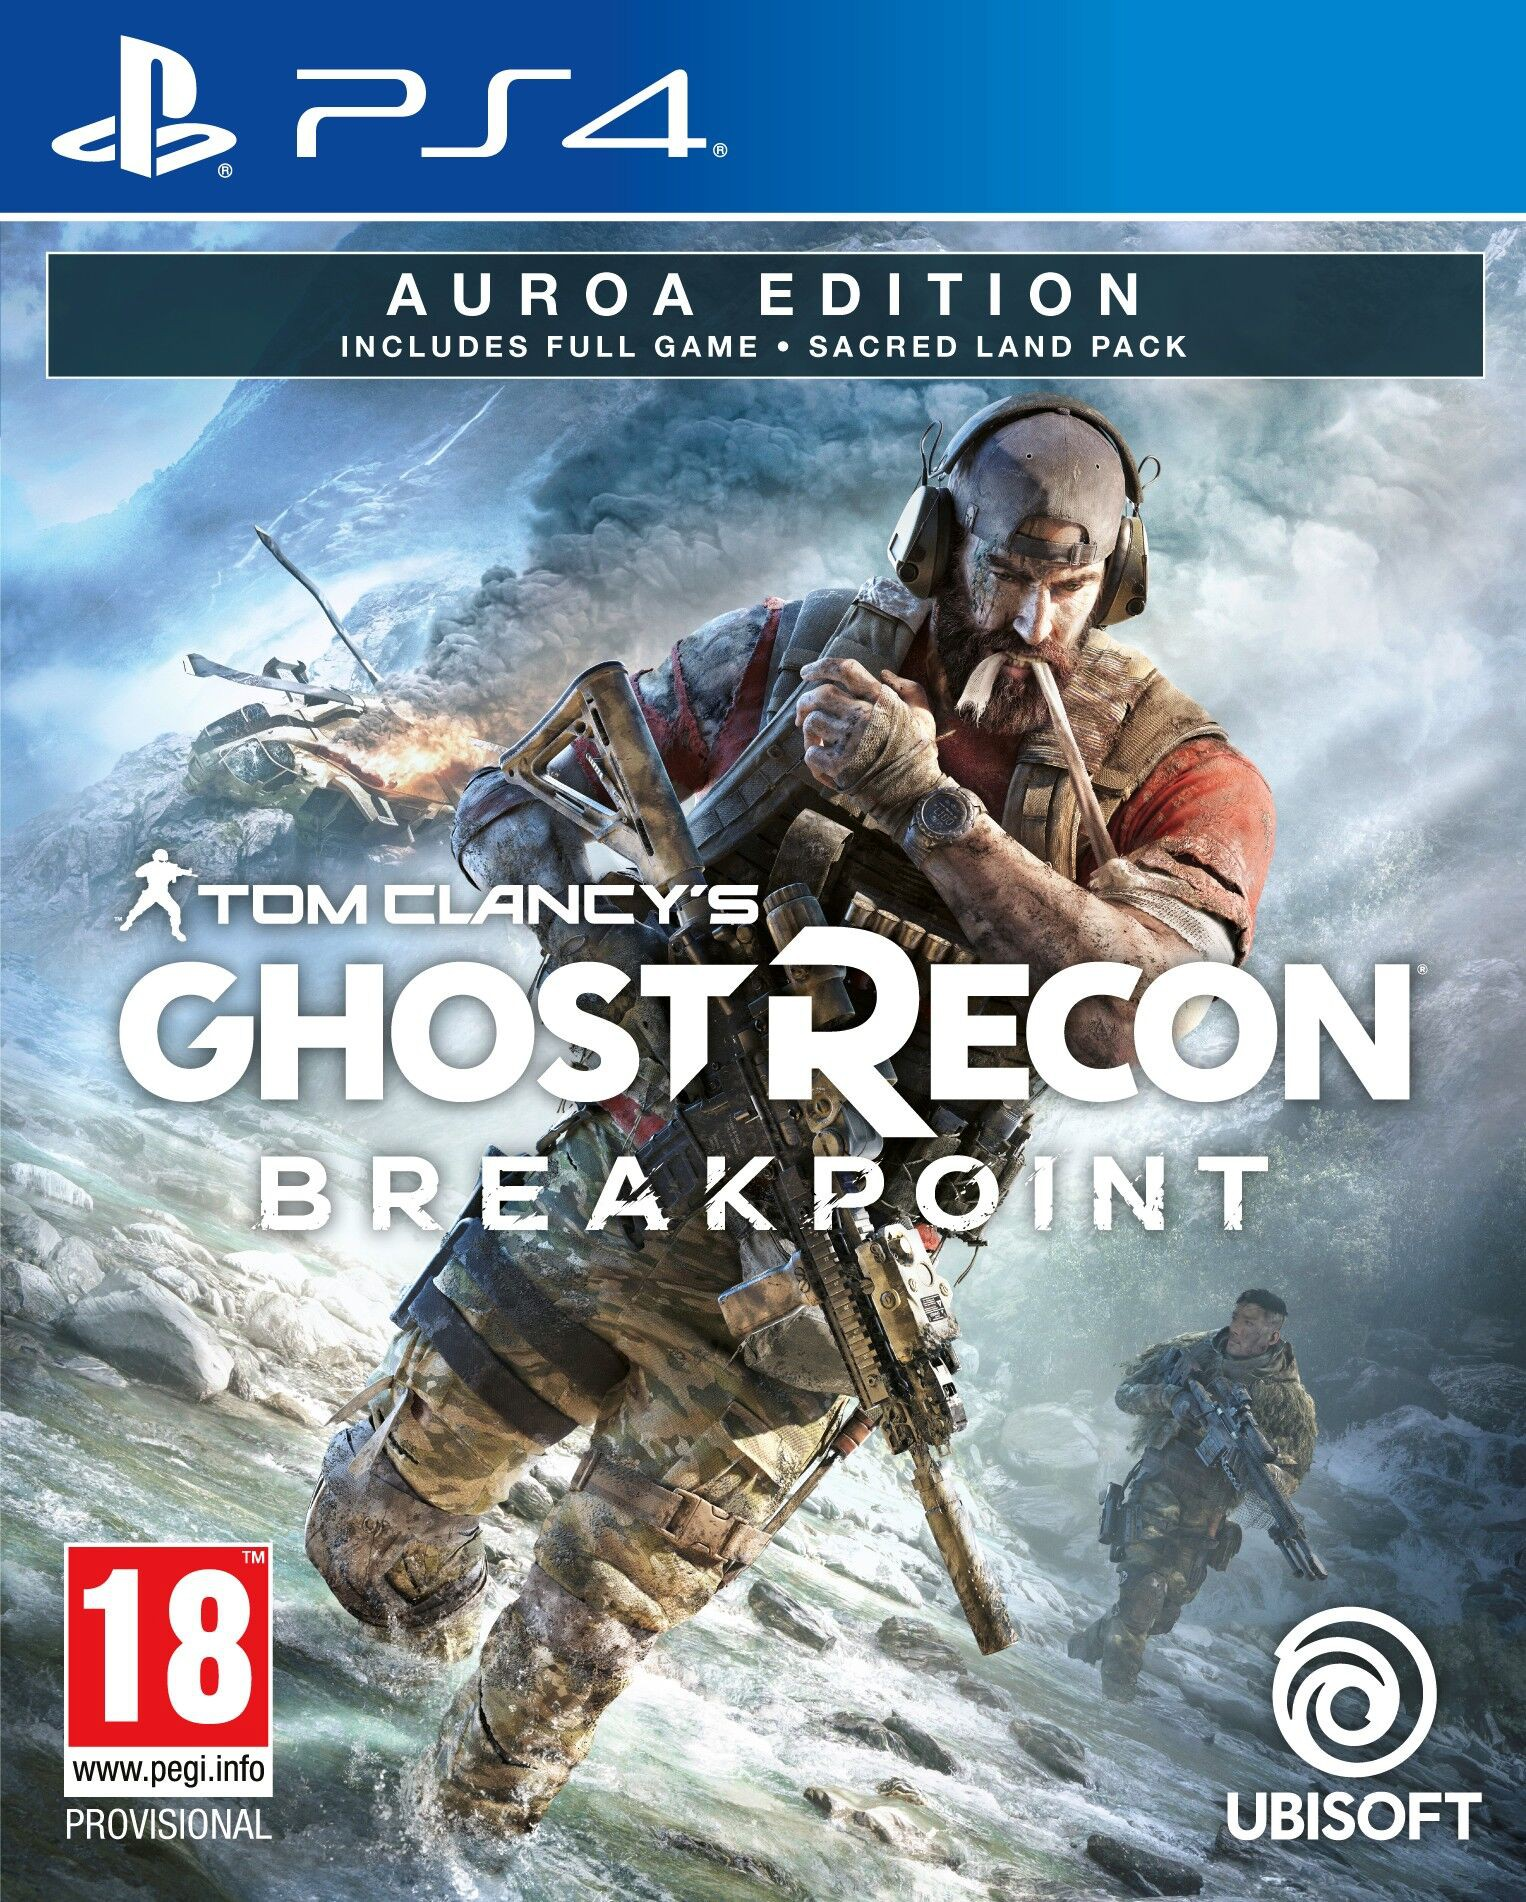 Tom Clancys Ghost Recon Breakpoint: Auroa Edition - PlayStation 4 Játékok